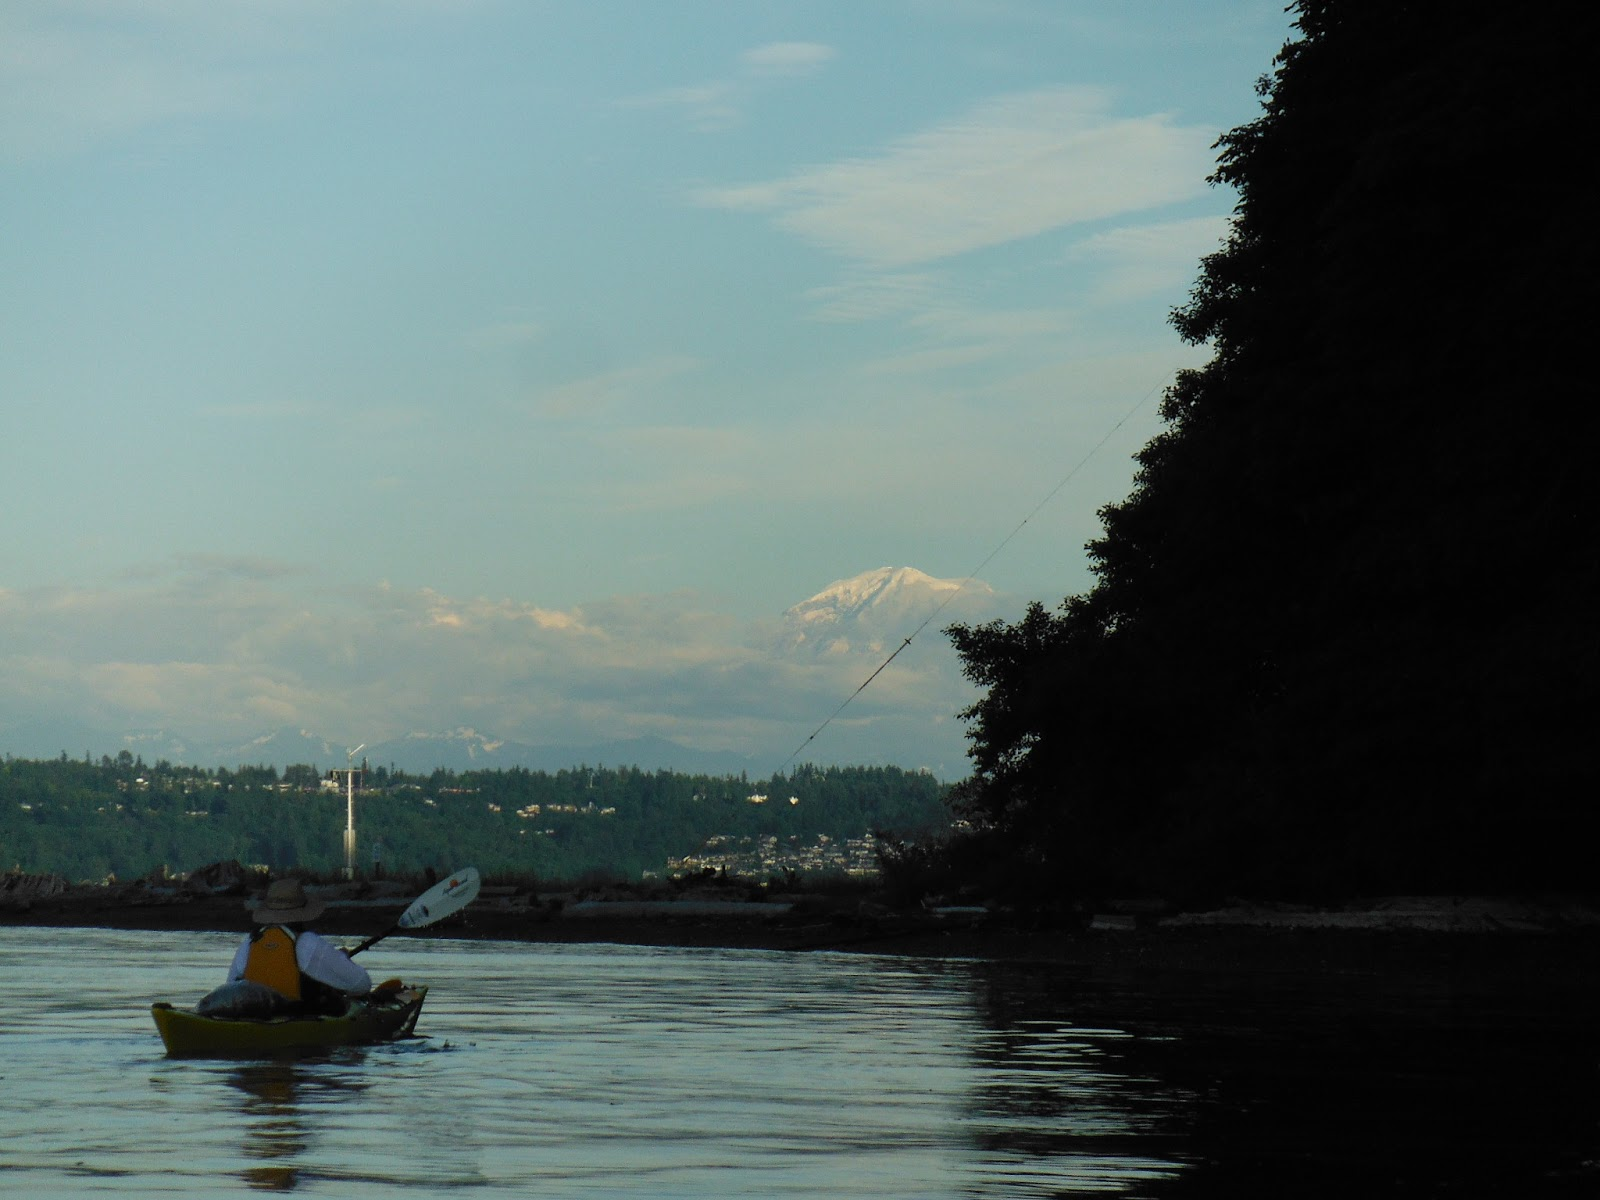 Mt Rainer and the Cascades are visible as we near the tip of Pt 1600x1200